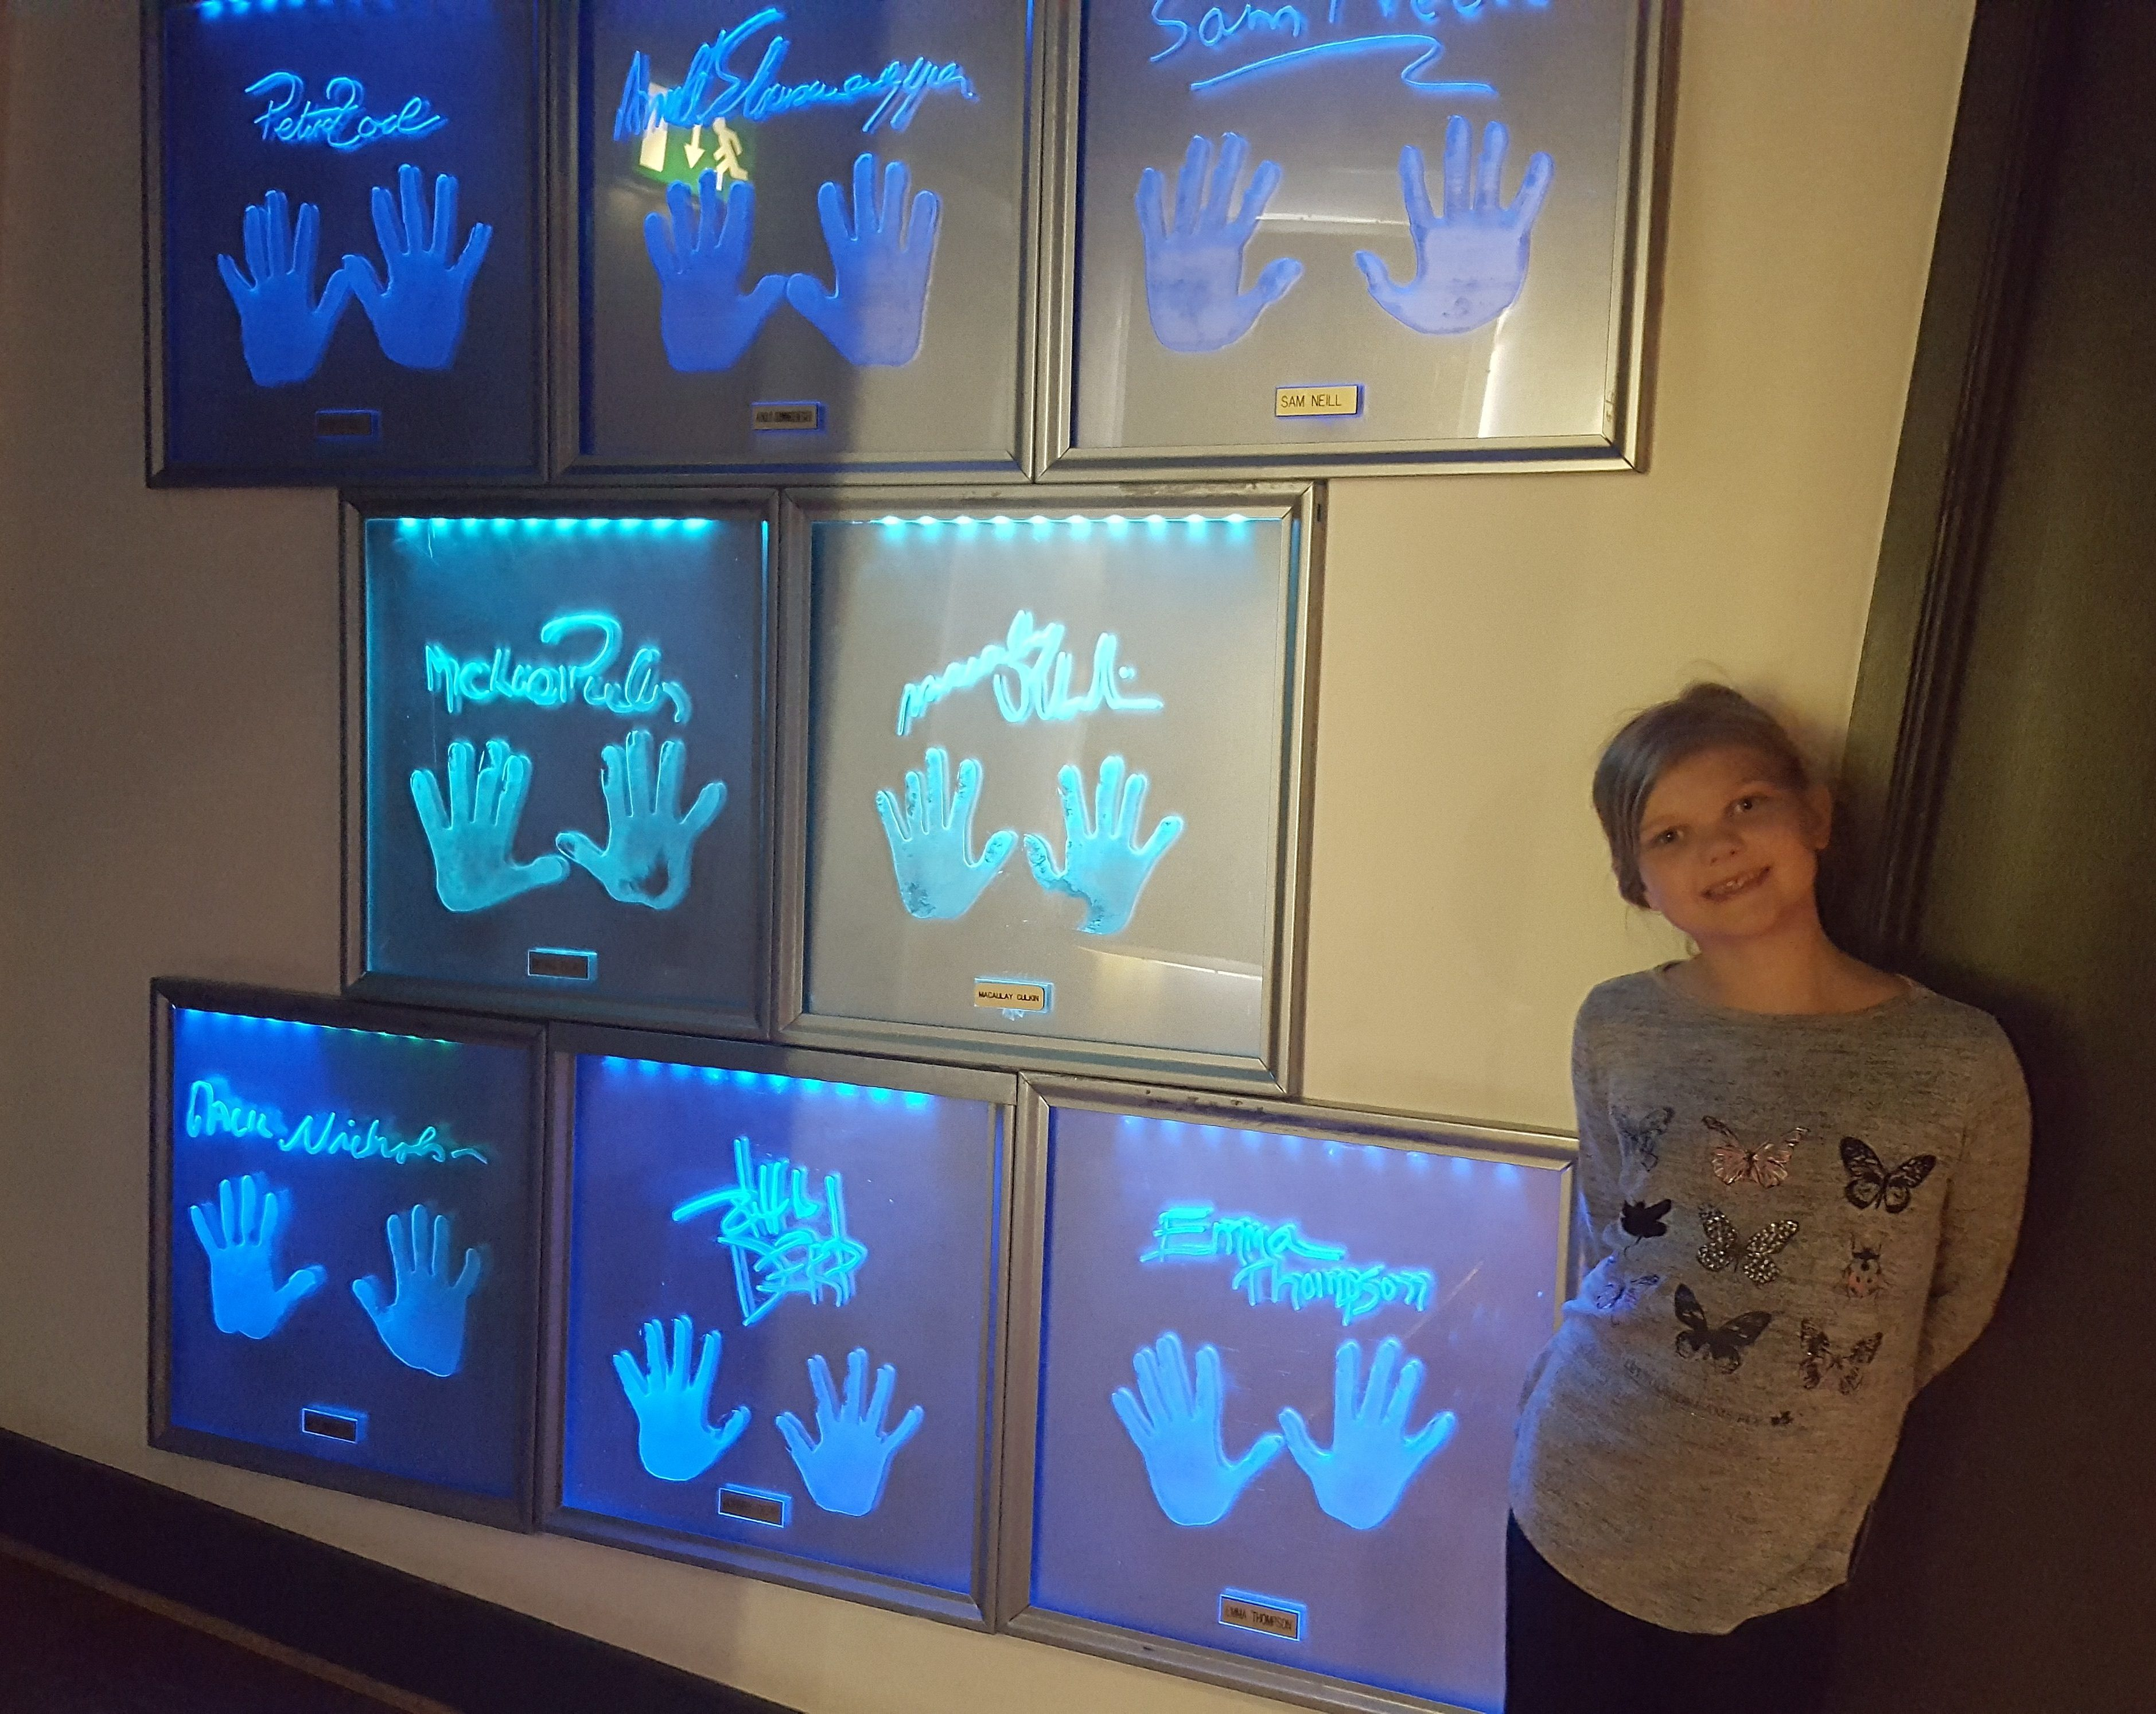 Planet Hollywood Wall of Famous Handprints